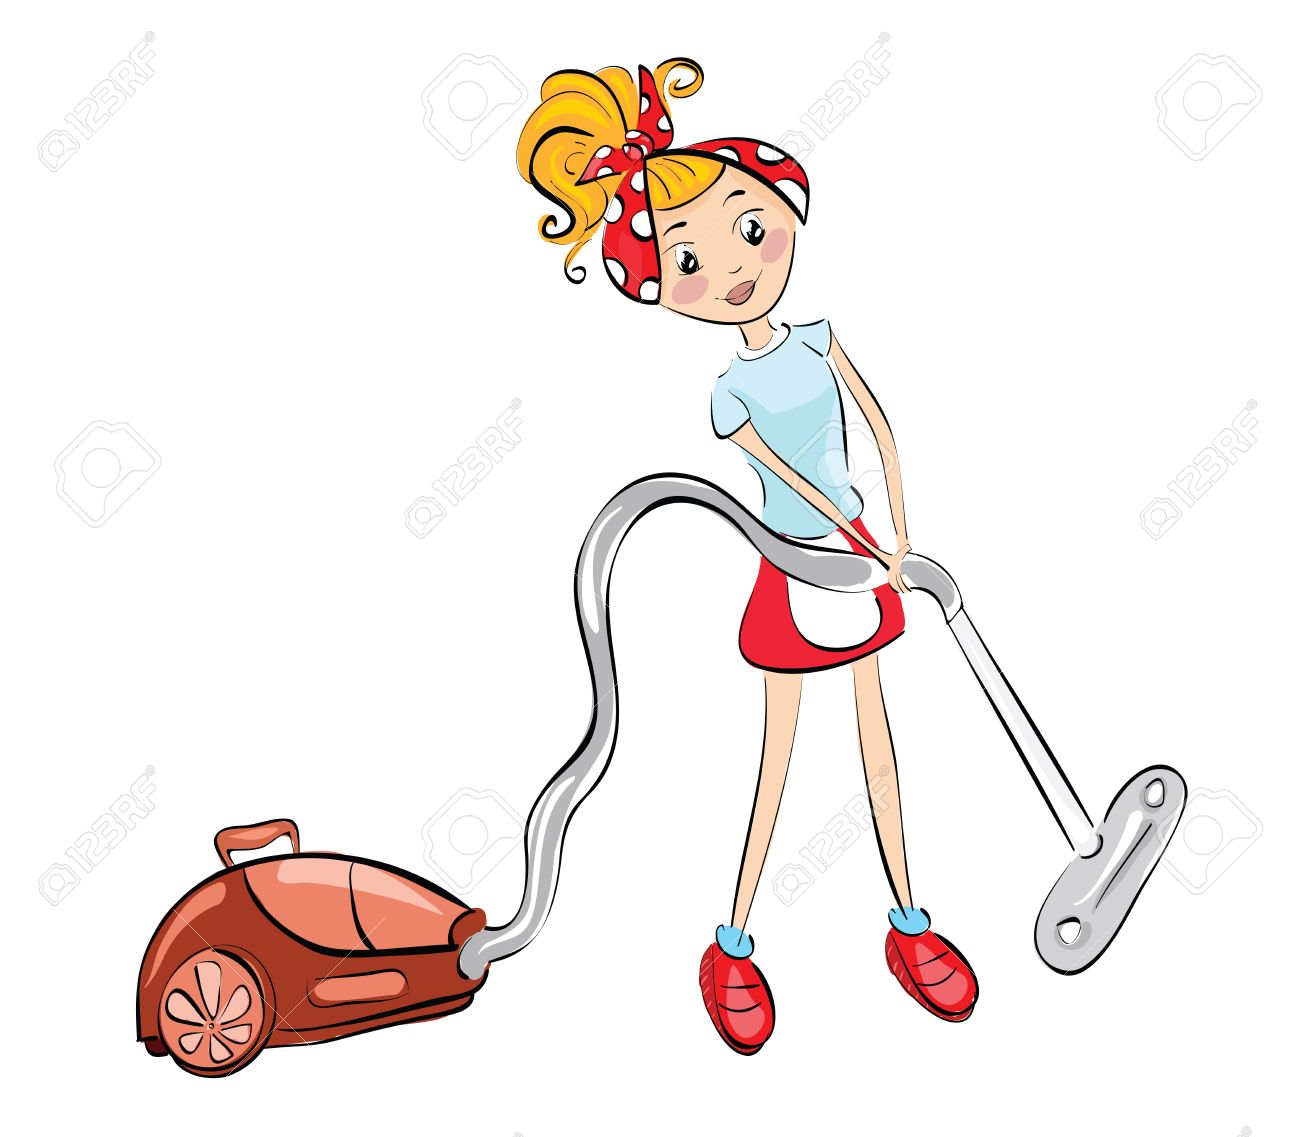 Woman With Vacuum Cleaner Clip Art Illustration Royalty Free Cliparts Vectors And Stock Illustration Image 27943534